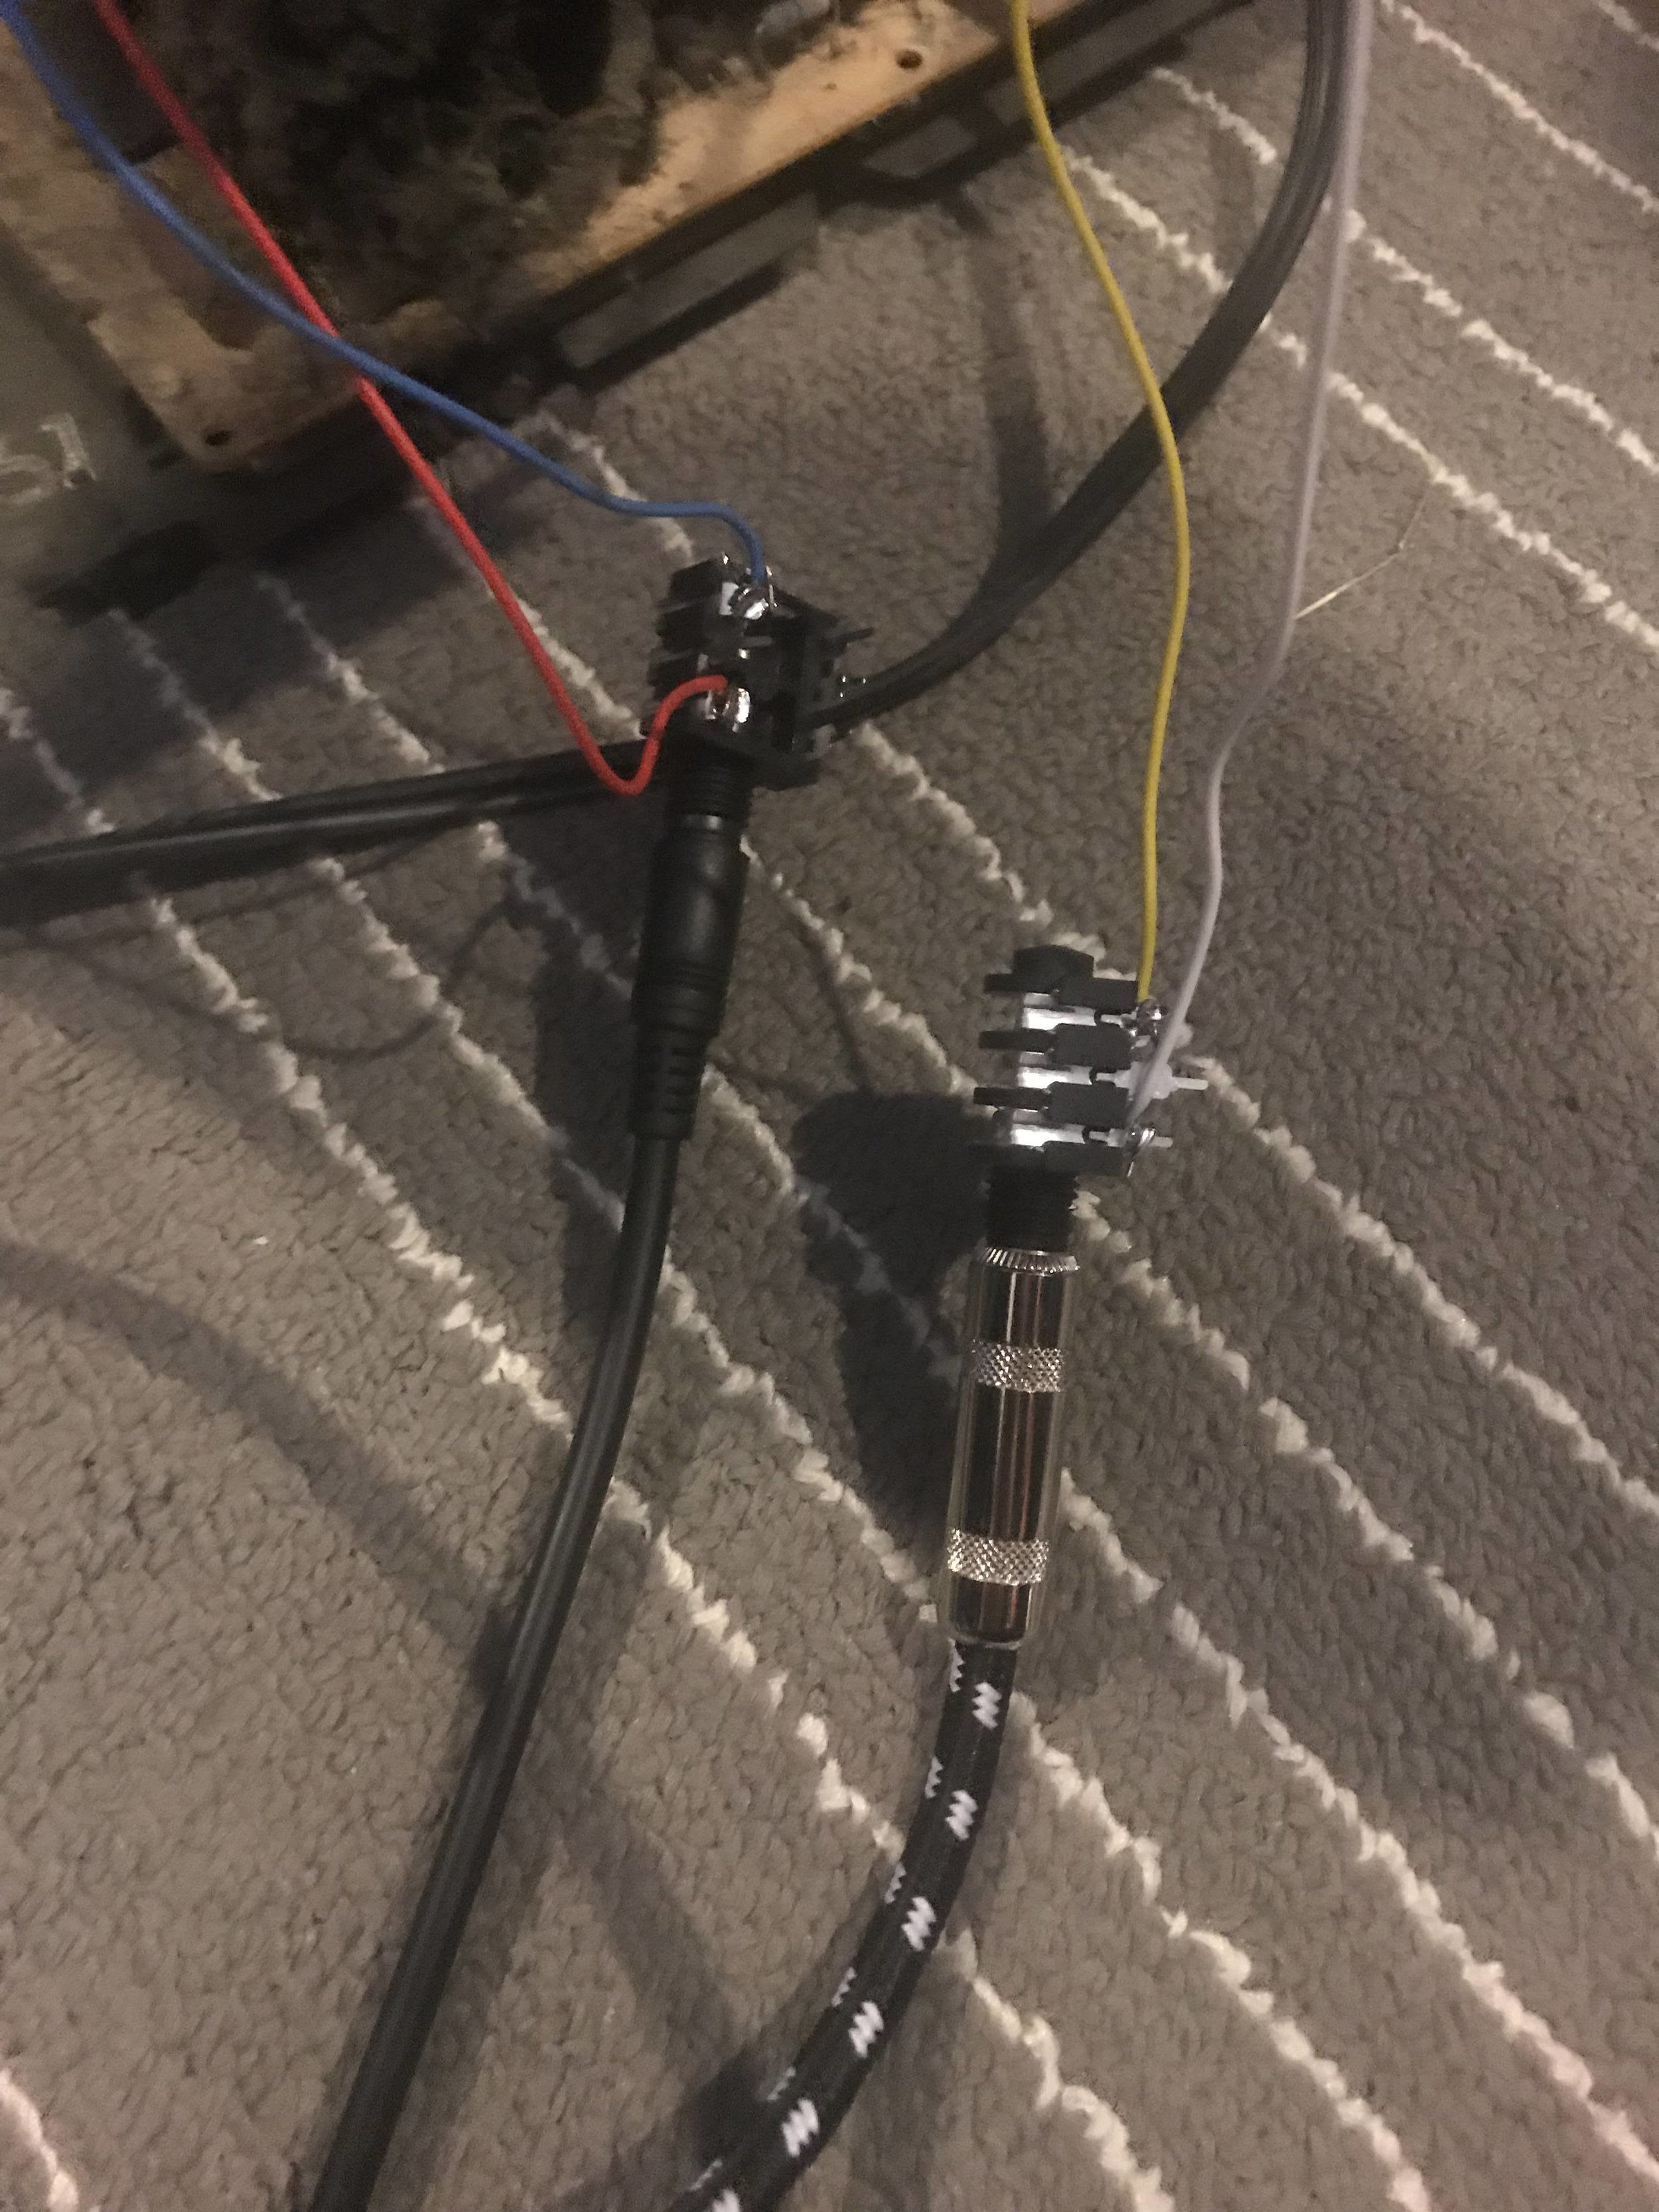 connection from deflection coils to cable jacks